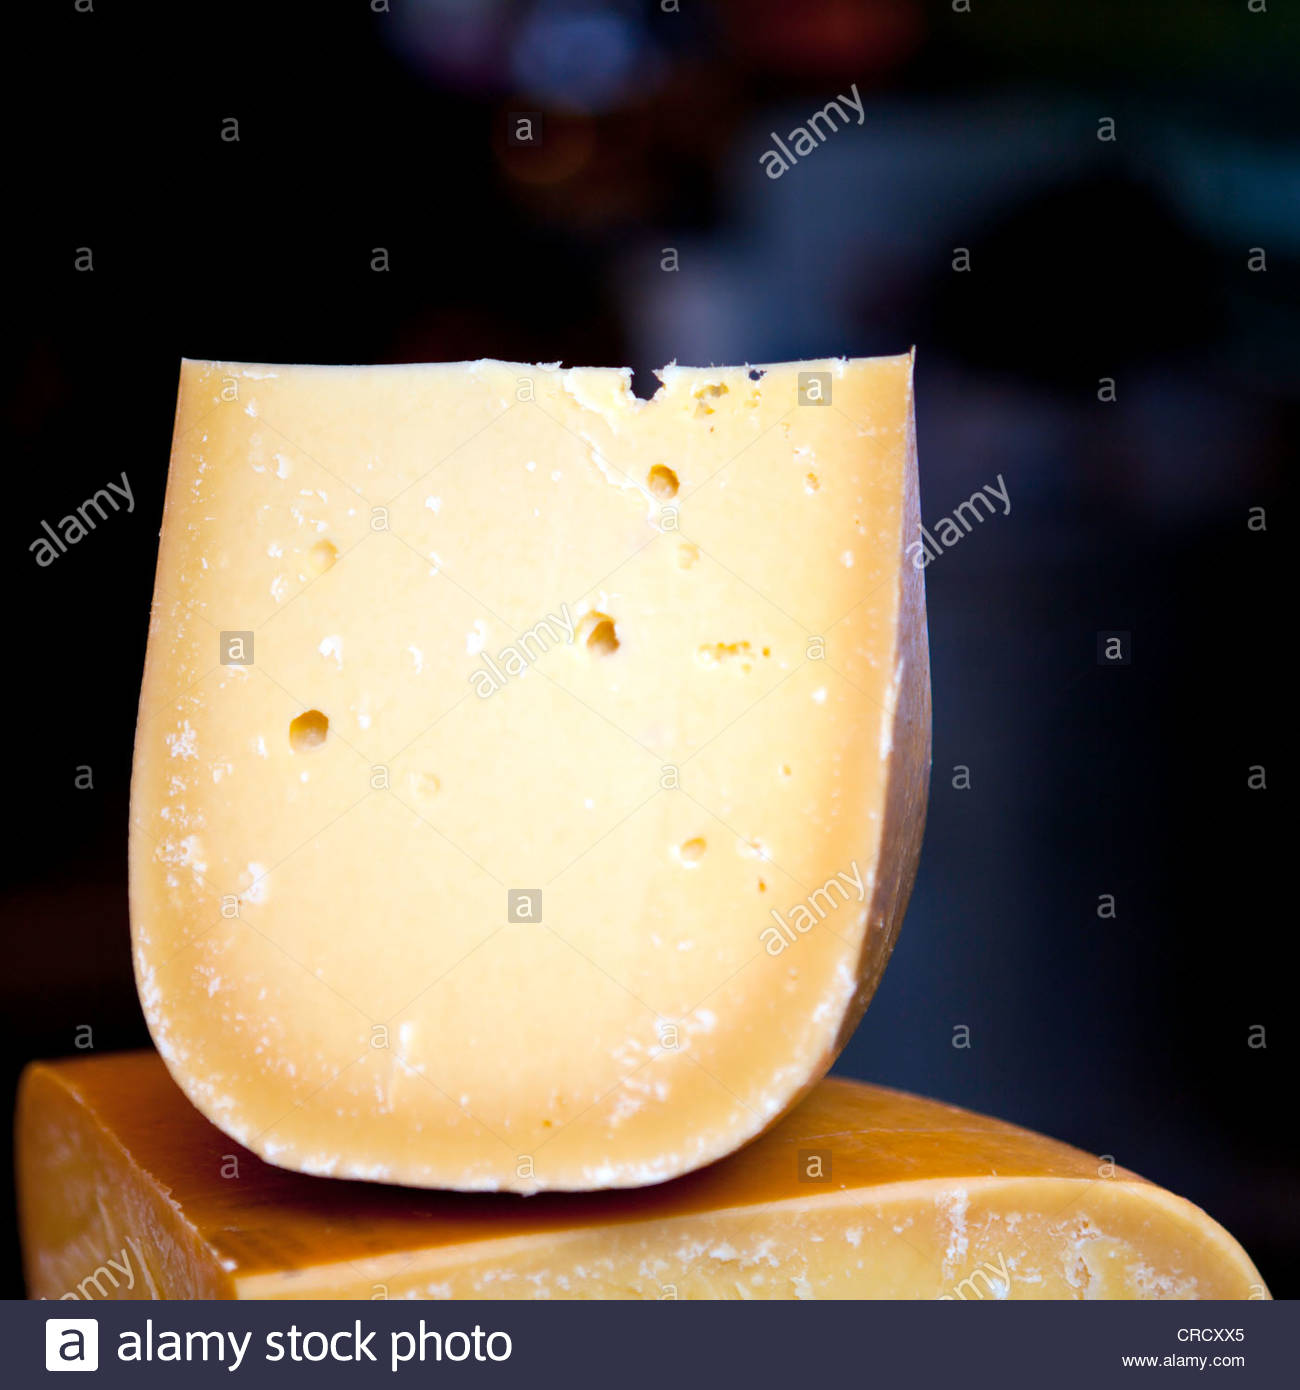 Artisan cheese wheel with smaller piece on top - Stock Image